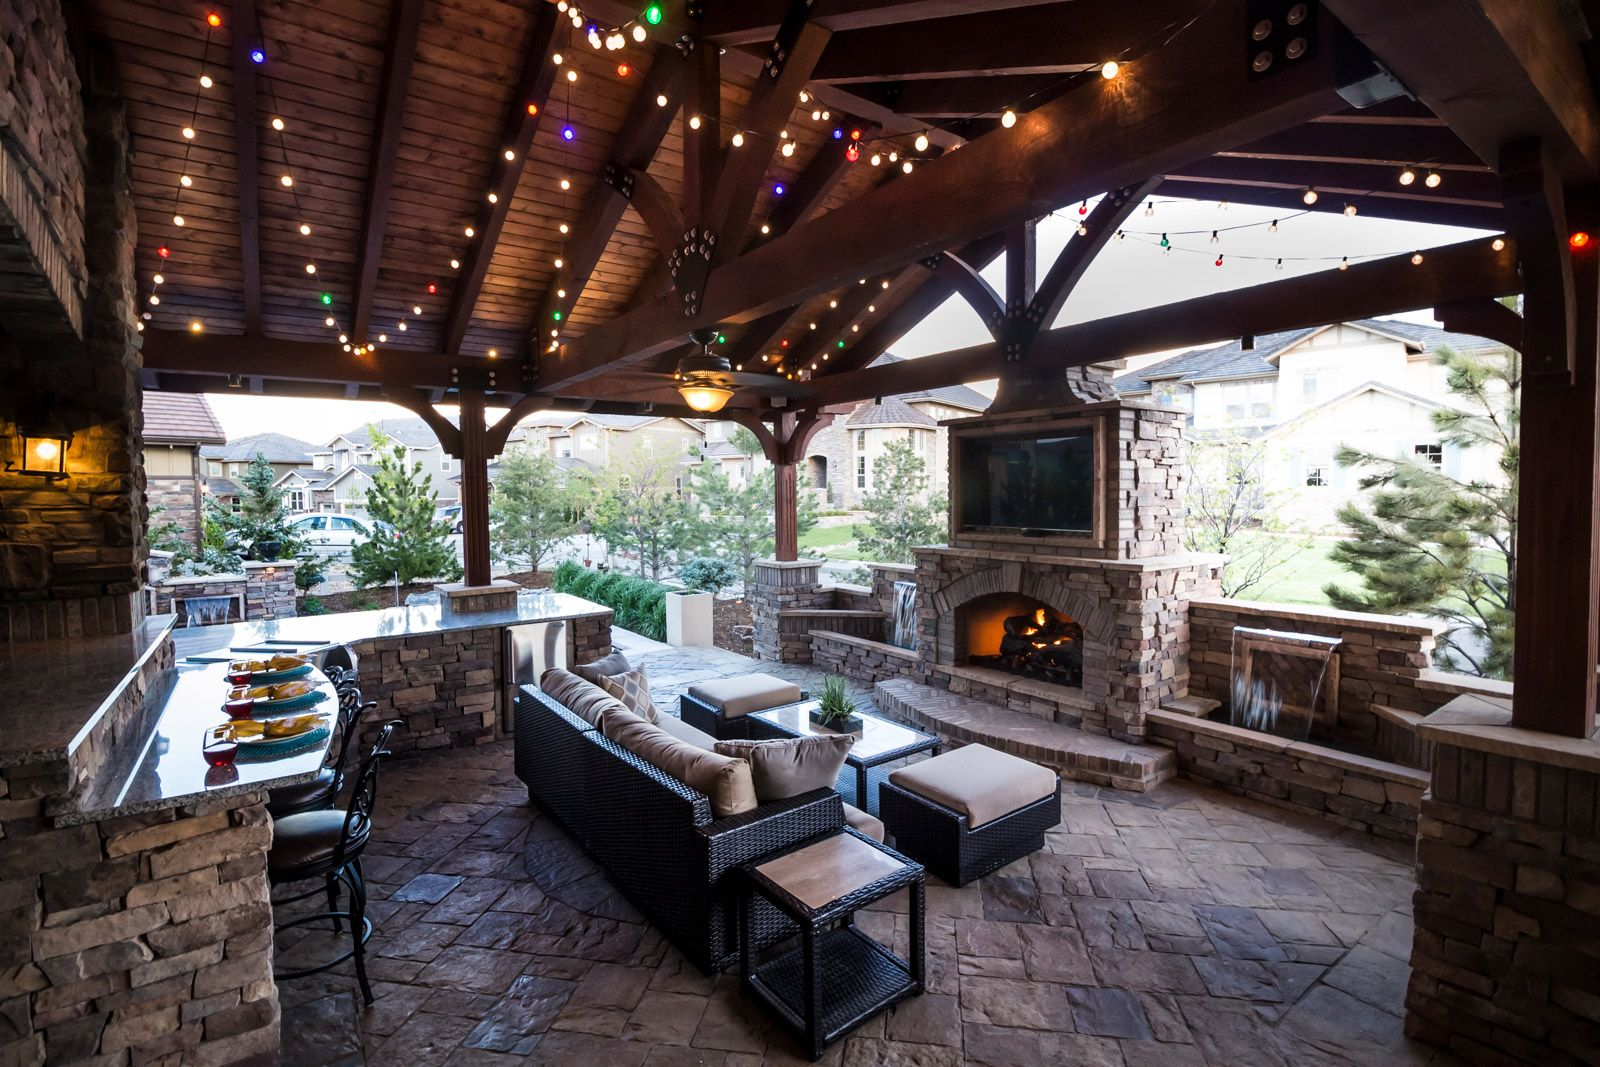 Outdoor Living Spaces & Structures - Elite Landscape ... on Small Backyard Living Spaces id=67029